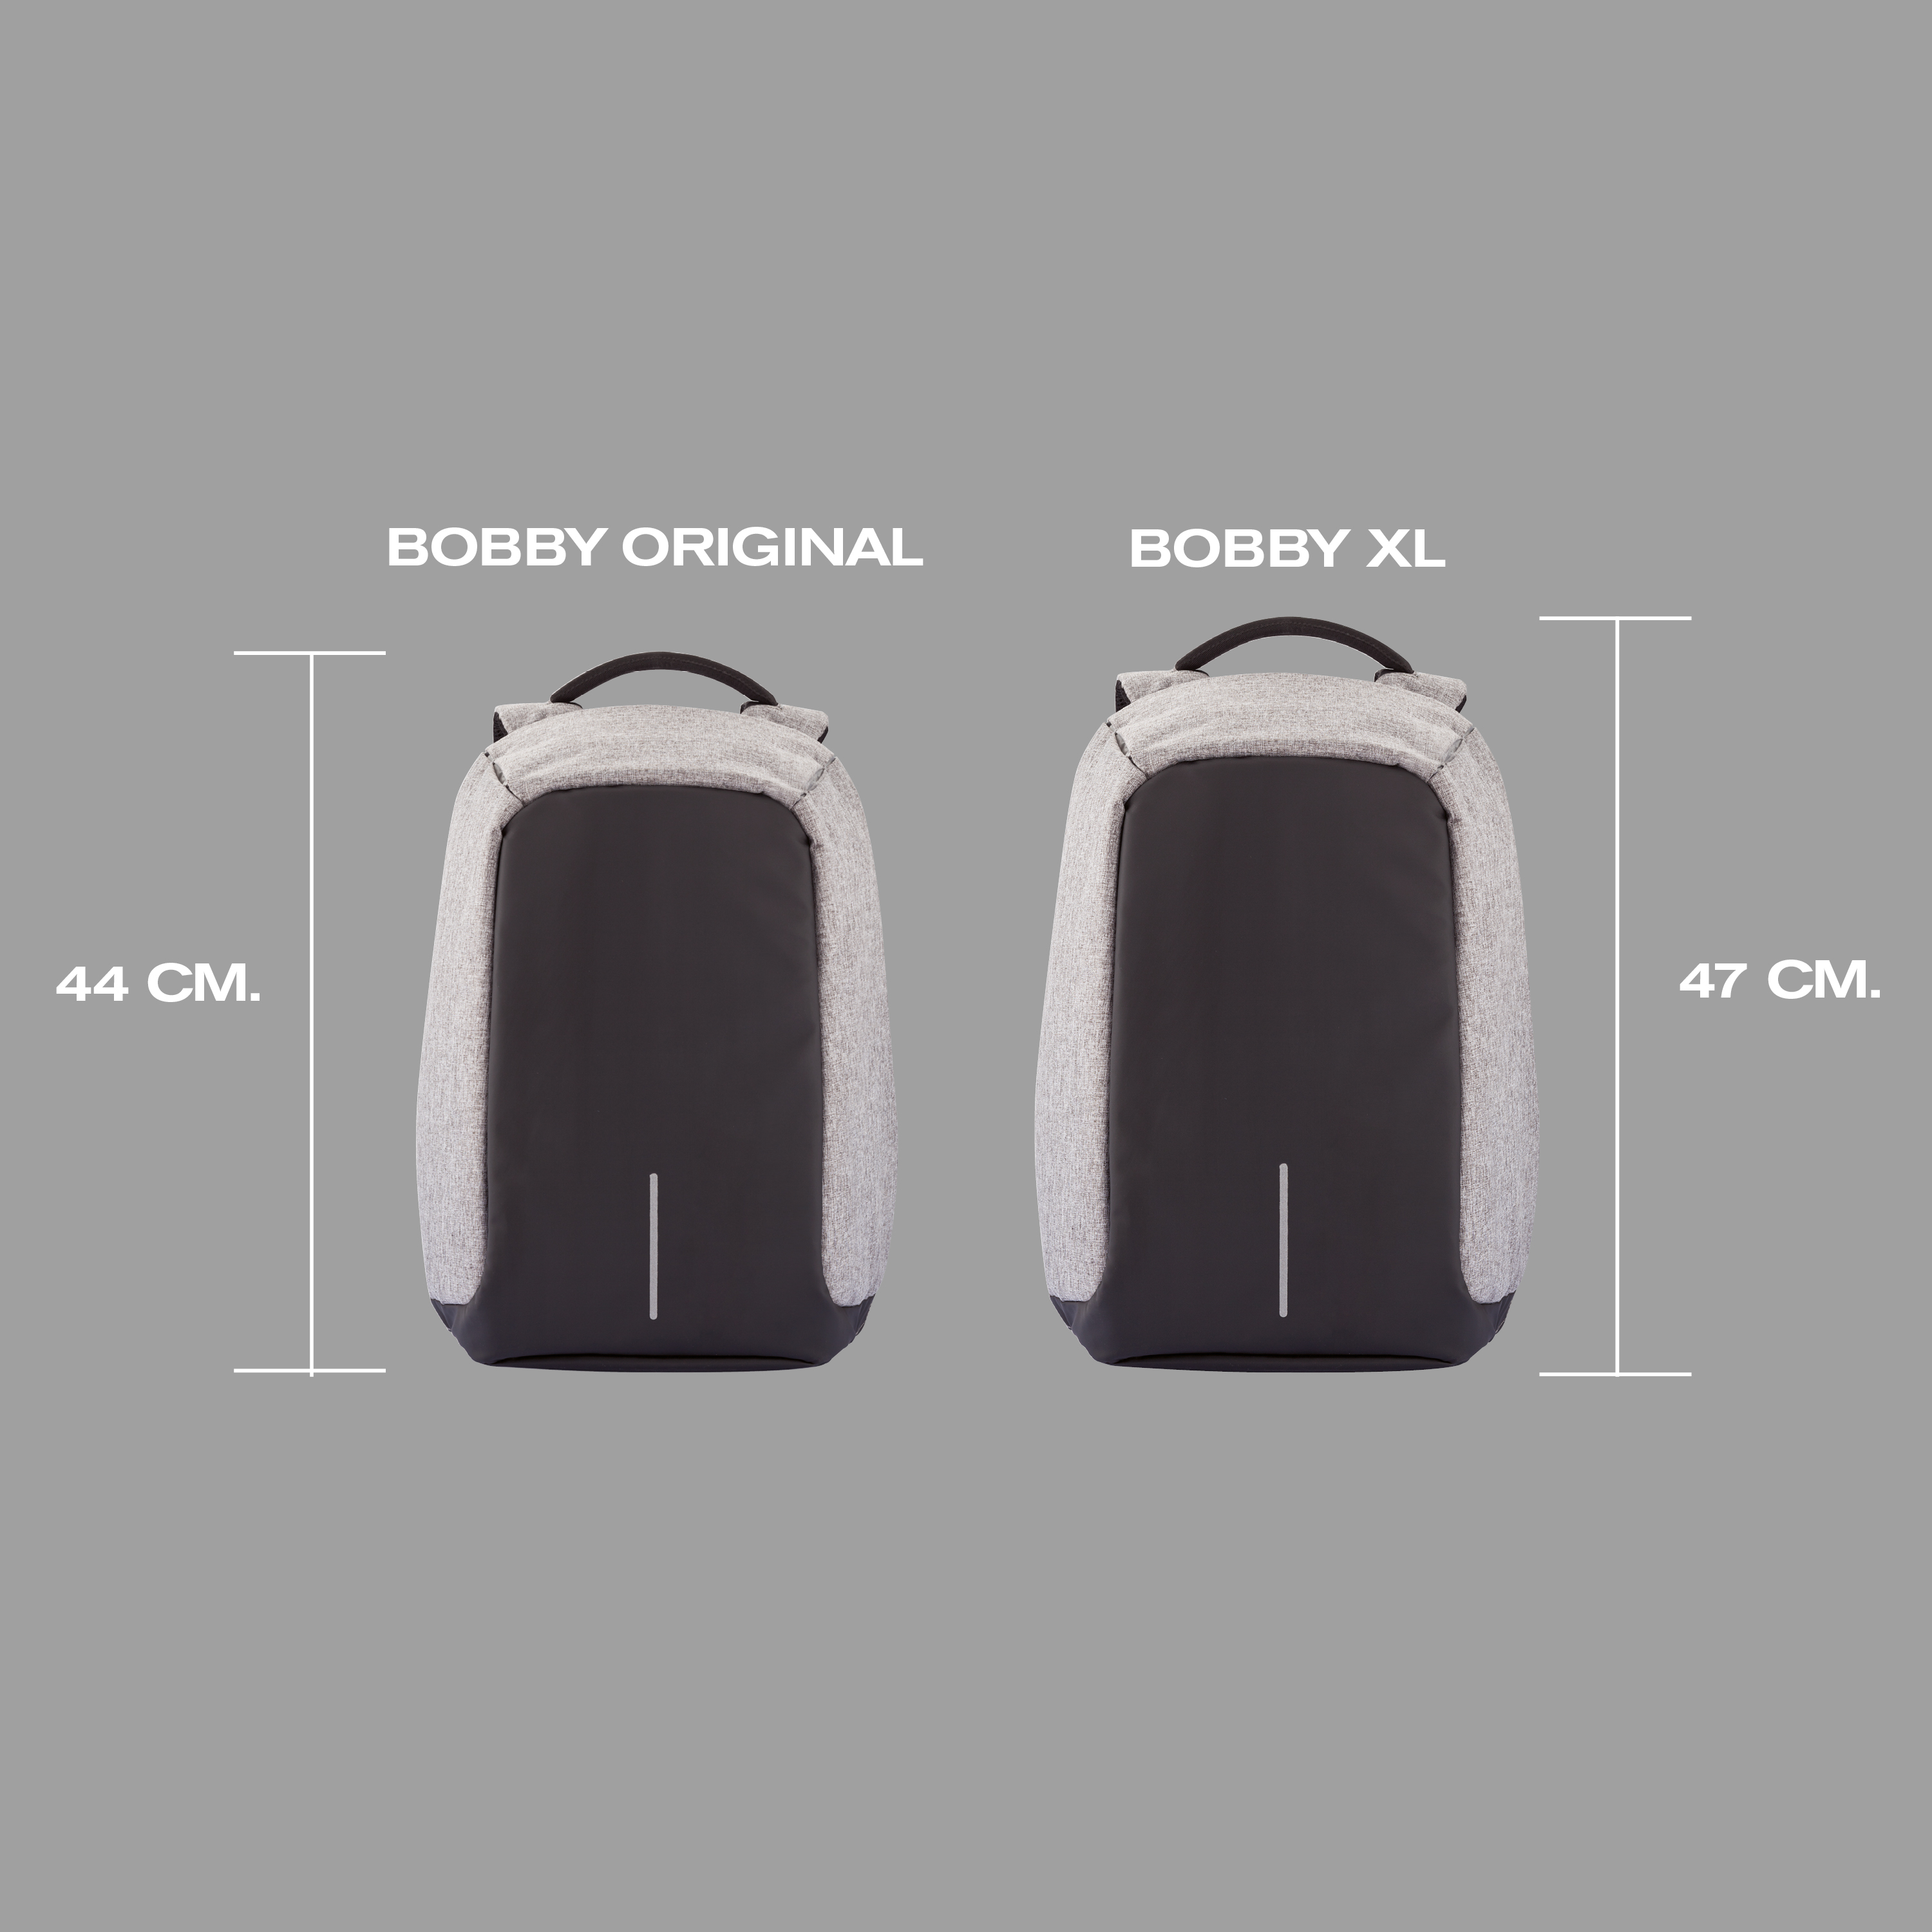 XD-Design-Bobby-XL-17-034-Anti-Theft-Laptop-Backpack-with-USB-Port-Unisex-Bag thumbnail 14